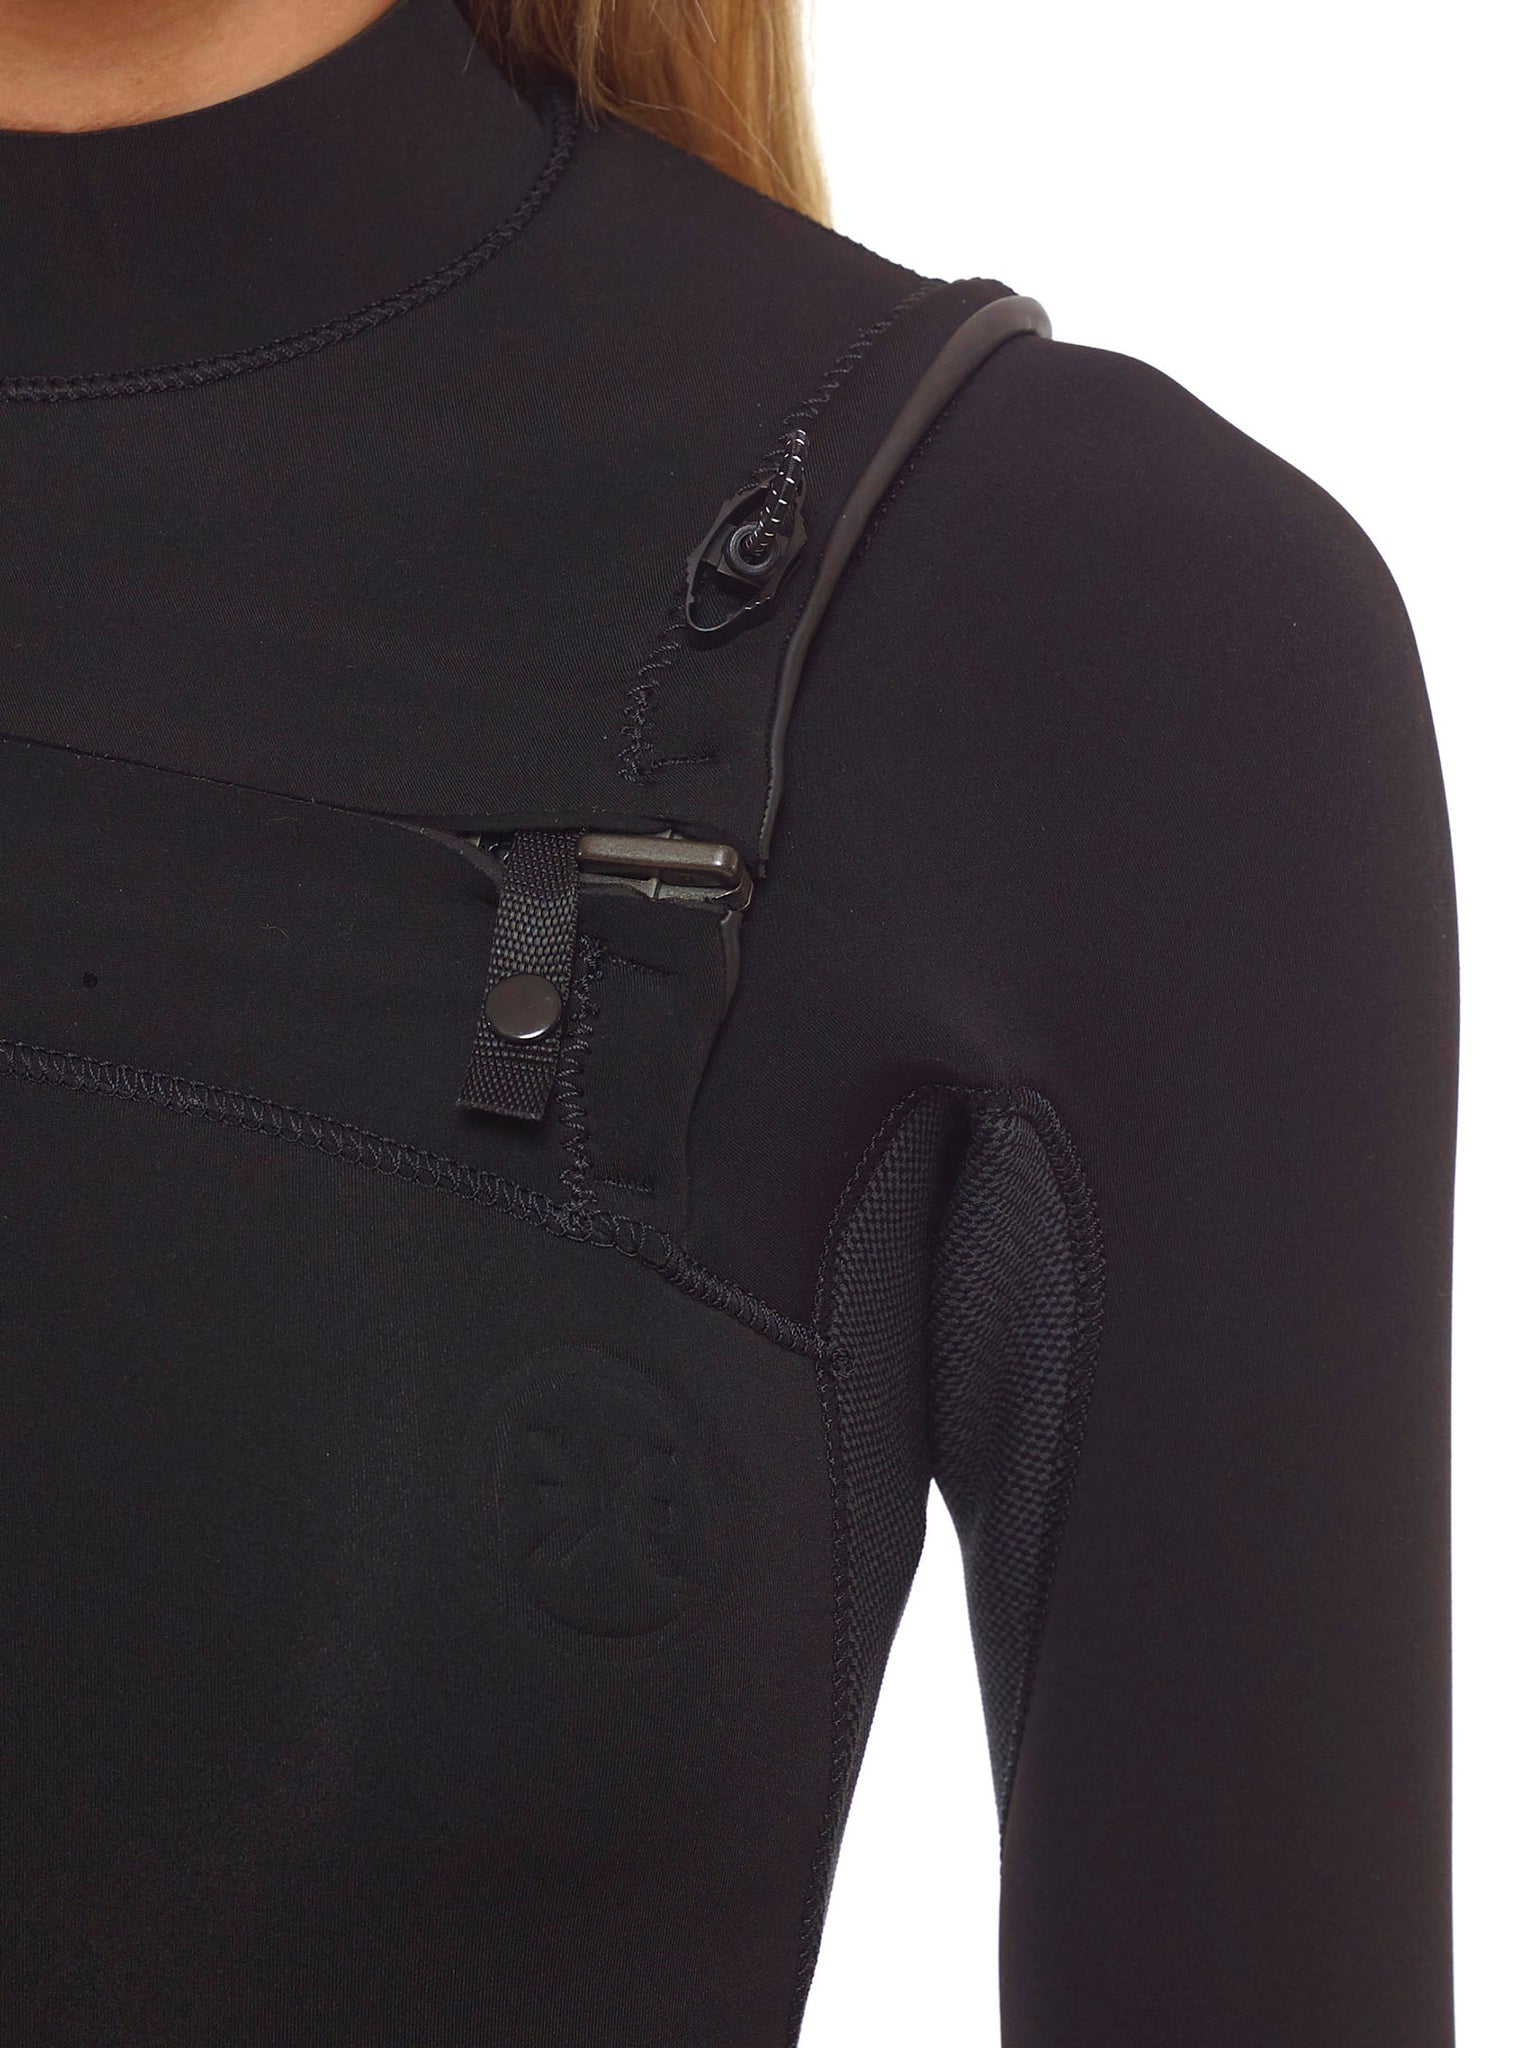 Wetsuit Woman Competition 4/3 Chest Zip Black